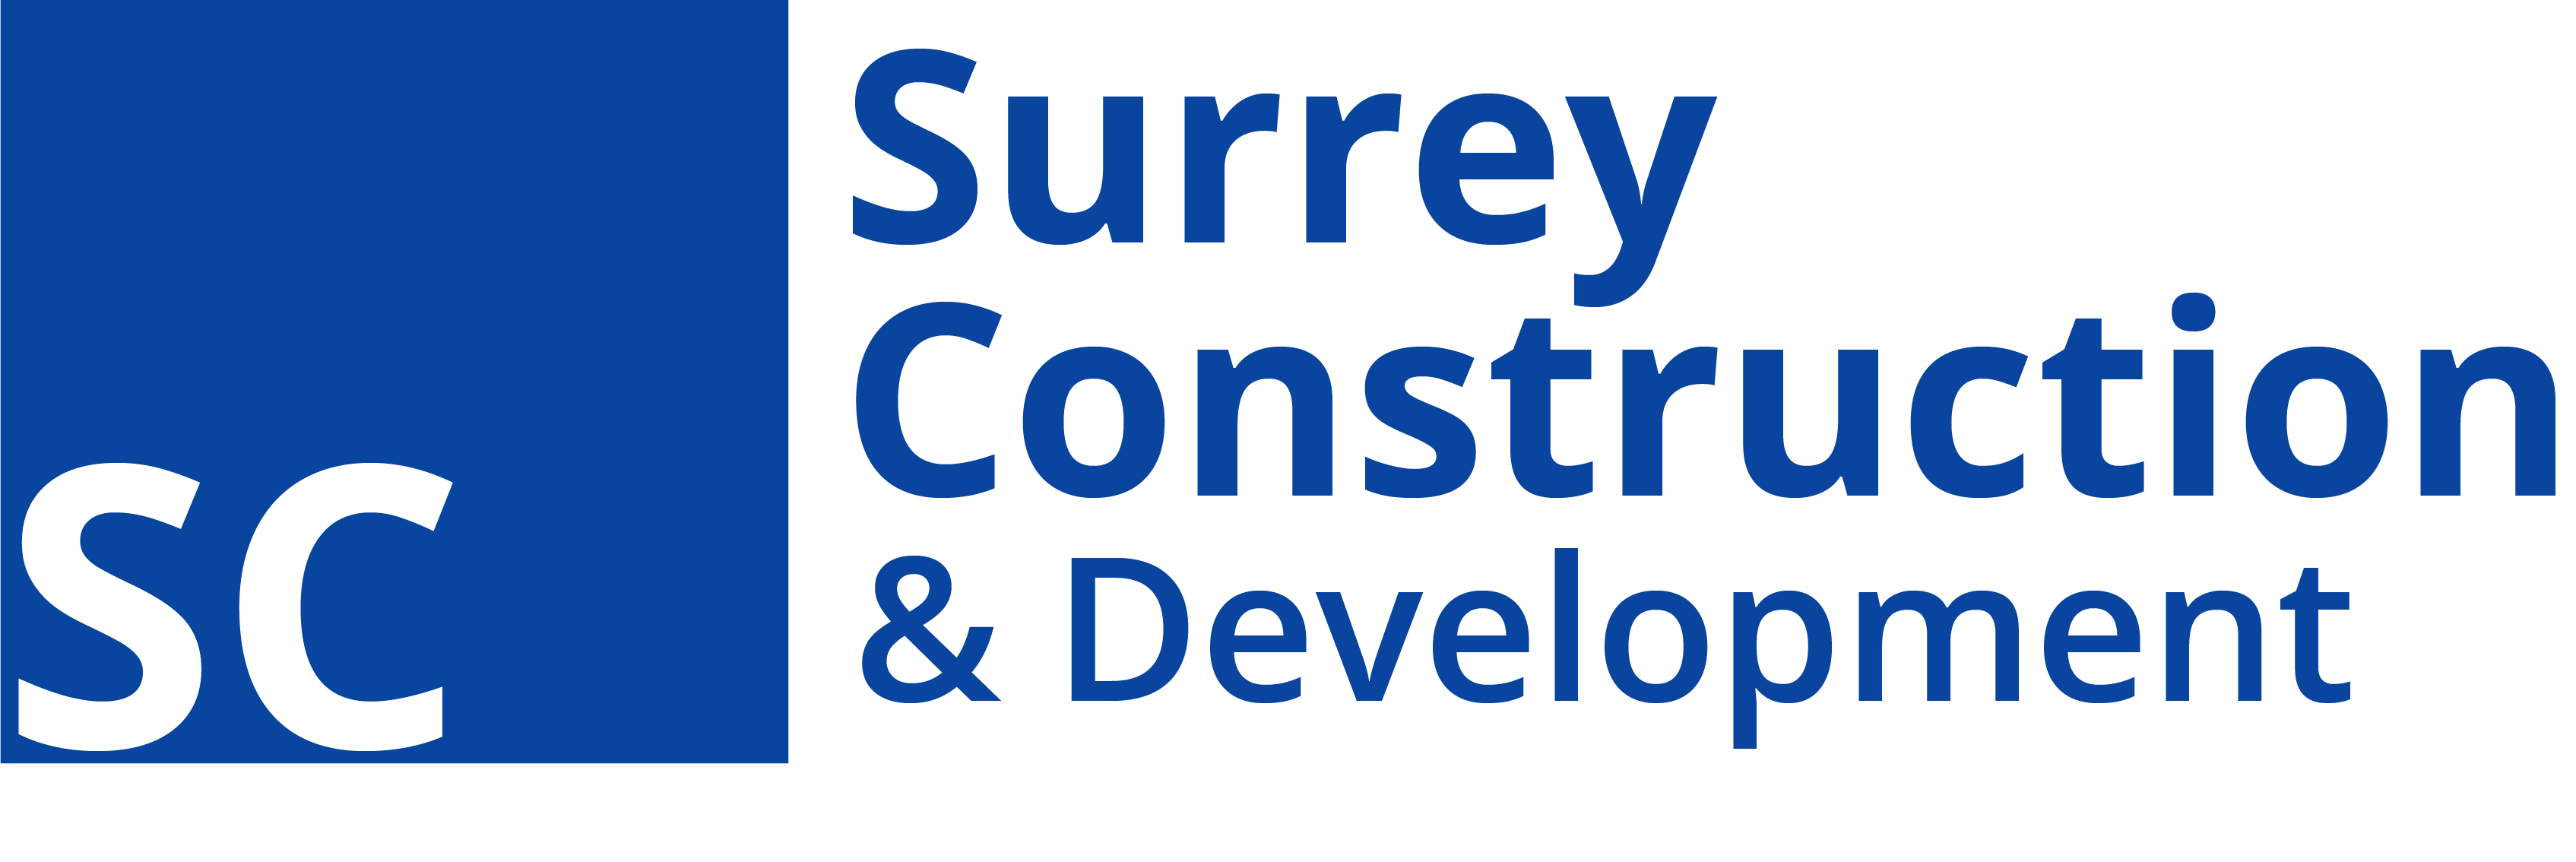 surrey-construction